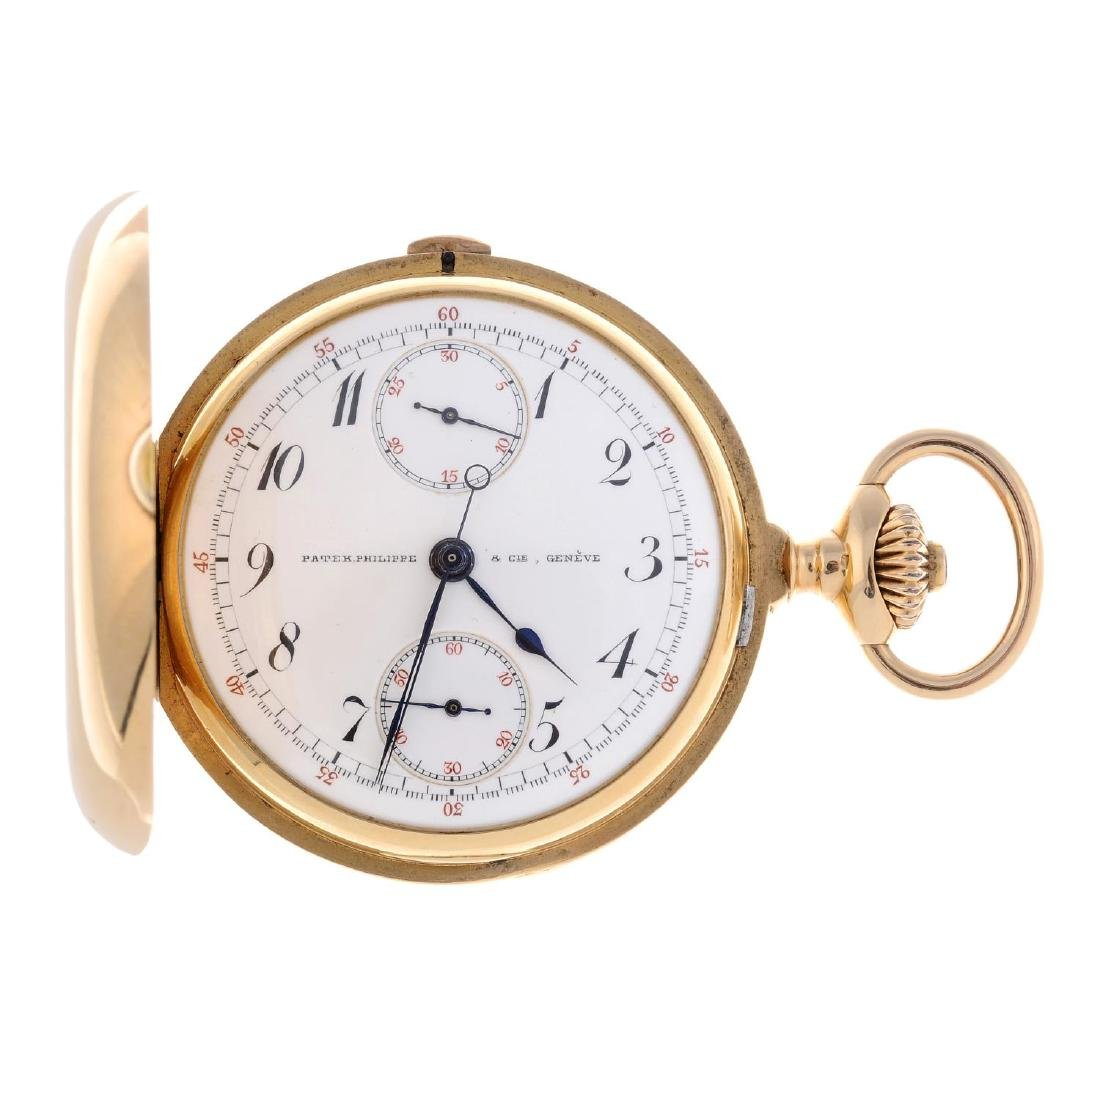 A full hunter chronograph pocket watch by Patek